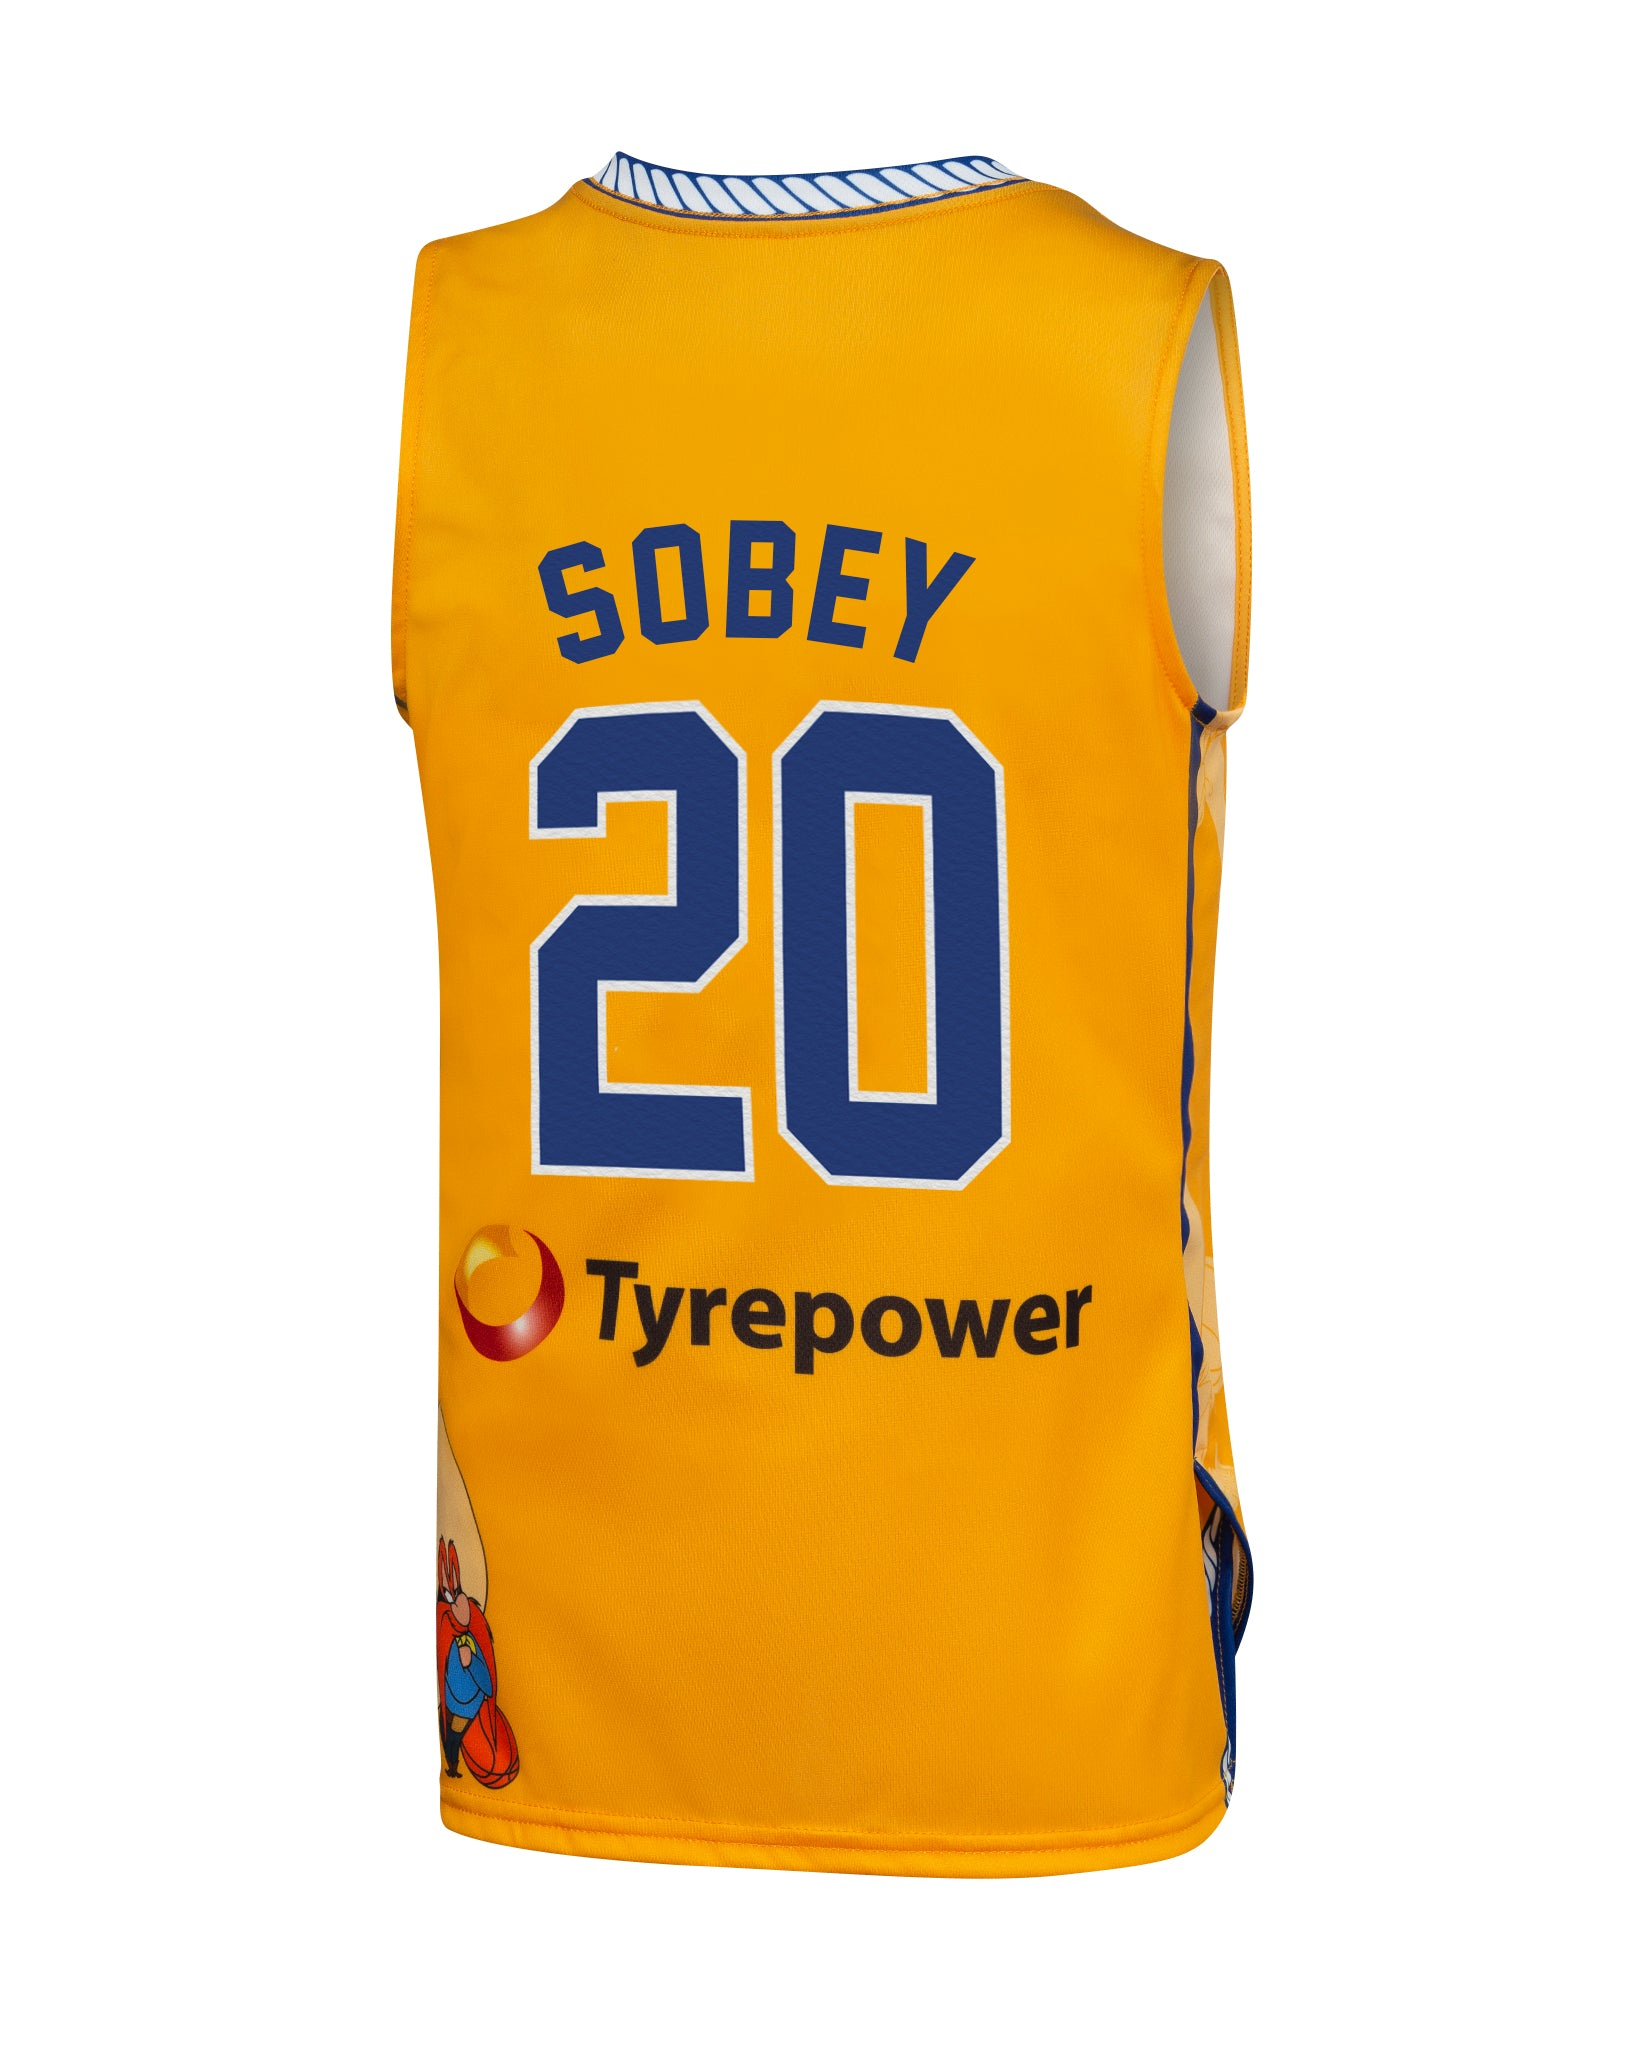 Brisbane Bullets 19/20 Youth Looney Tunes Jersey - Nathan Sobey